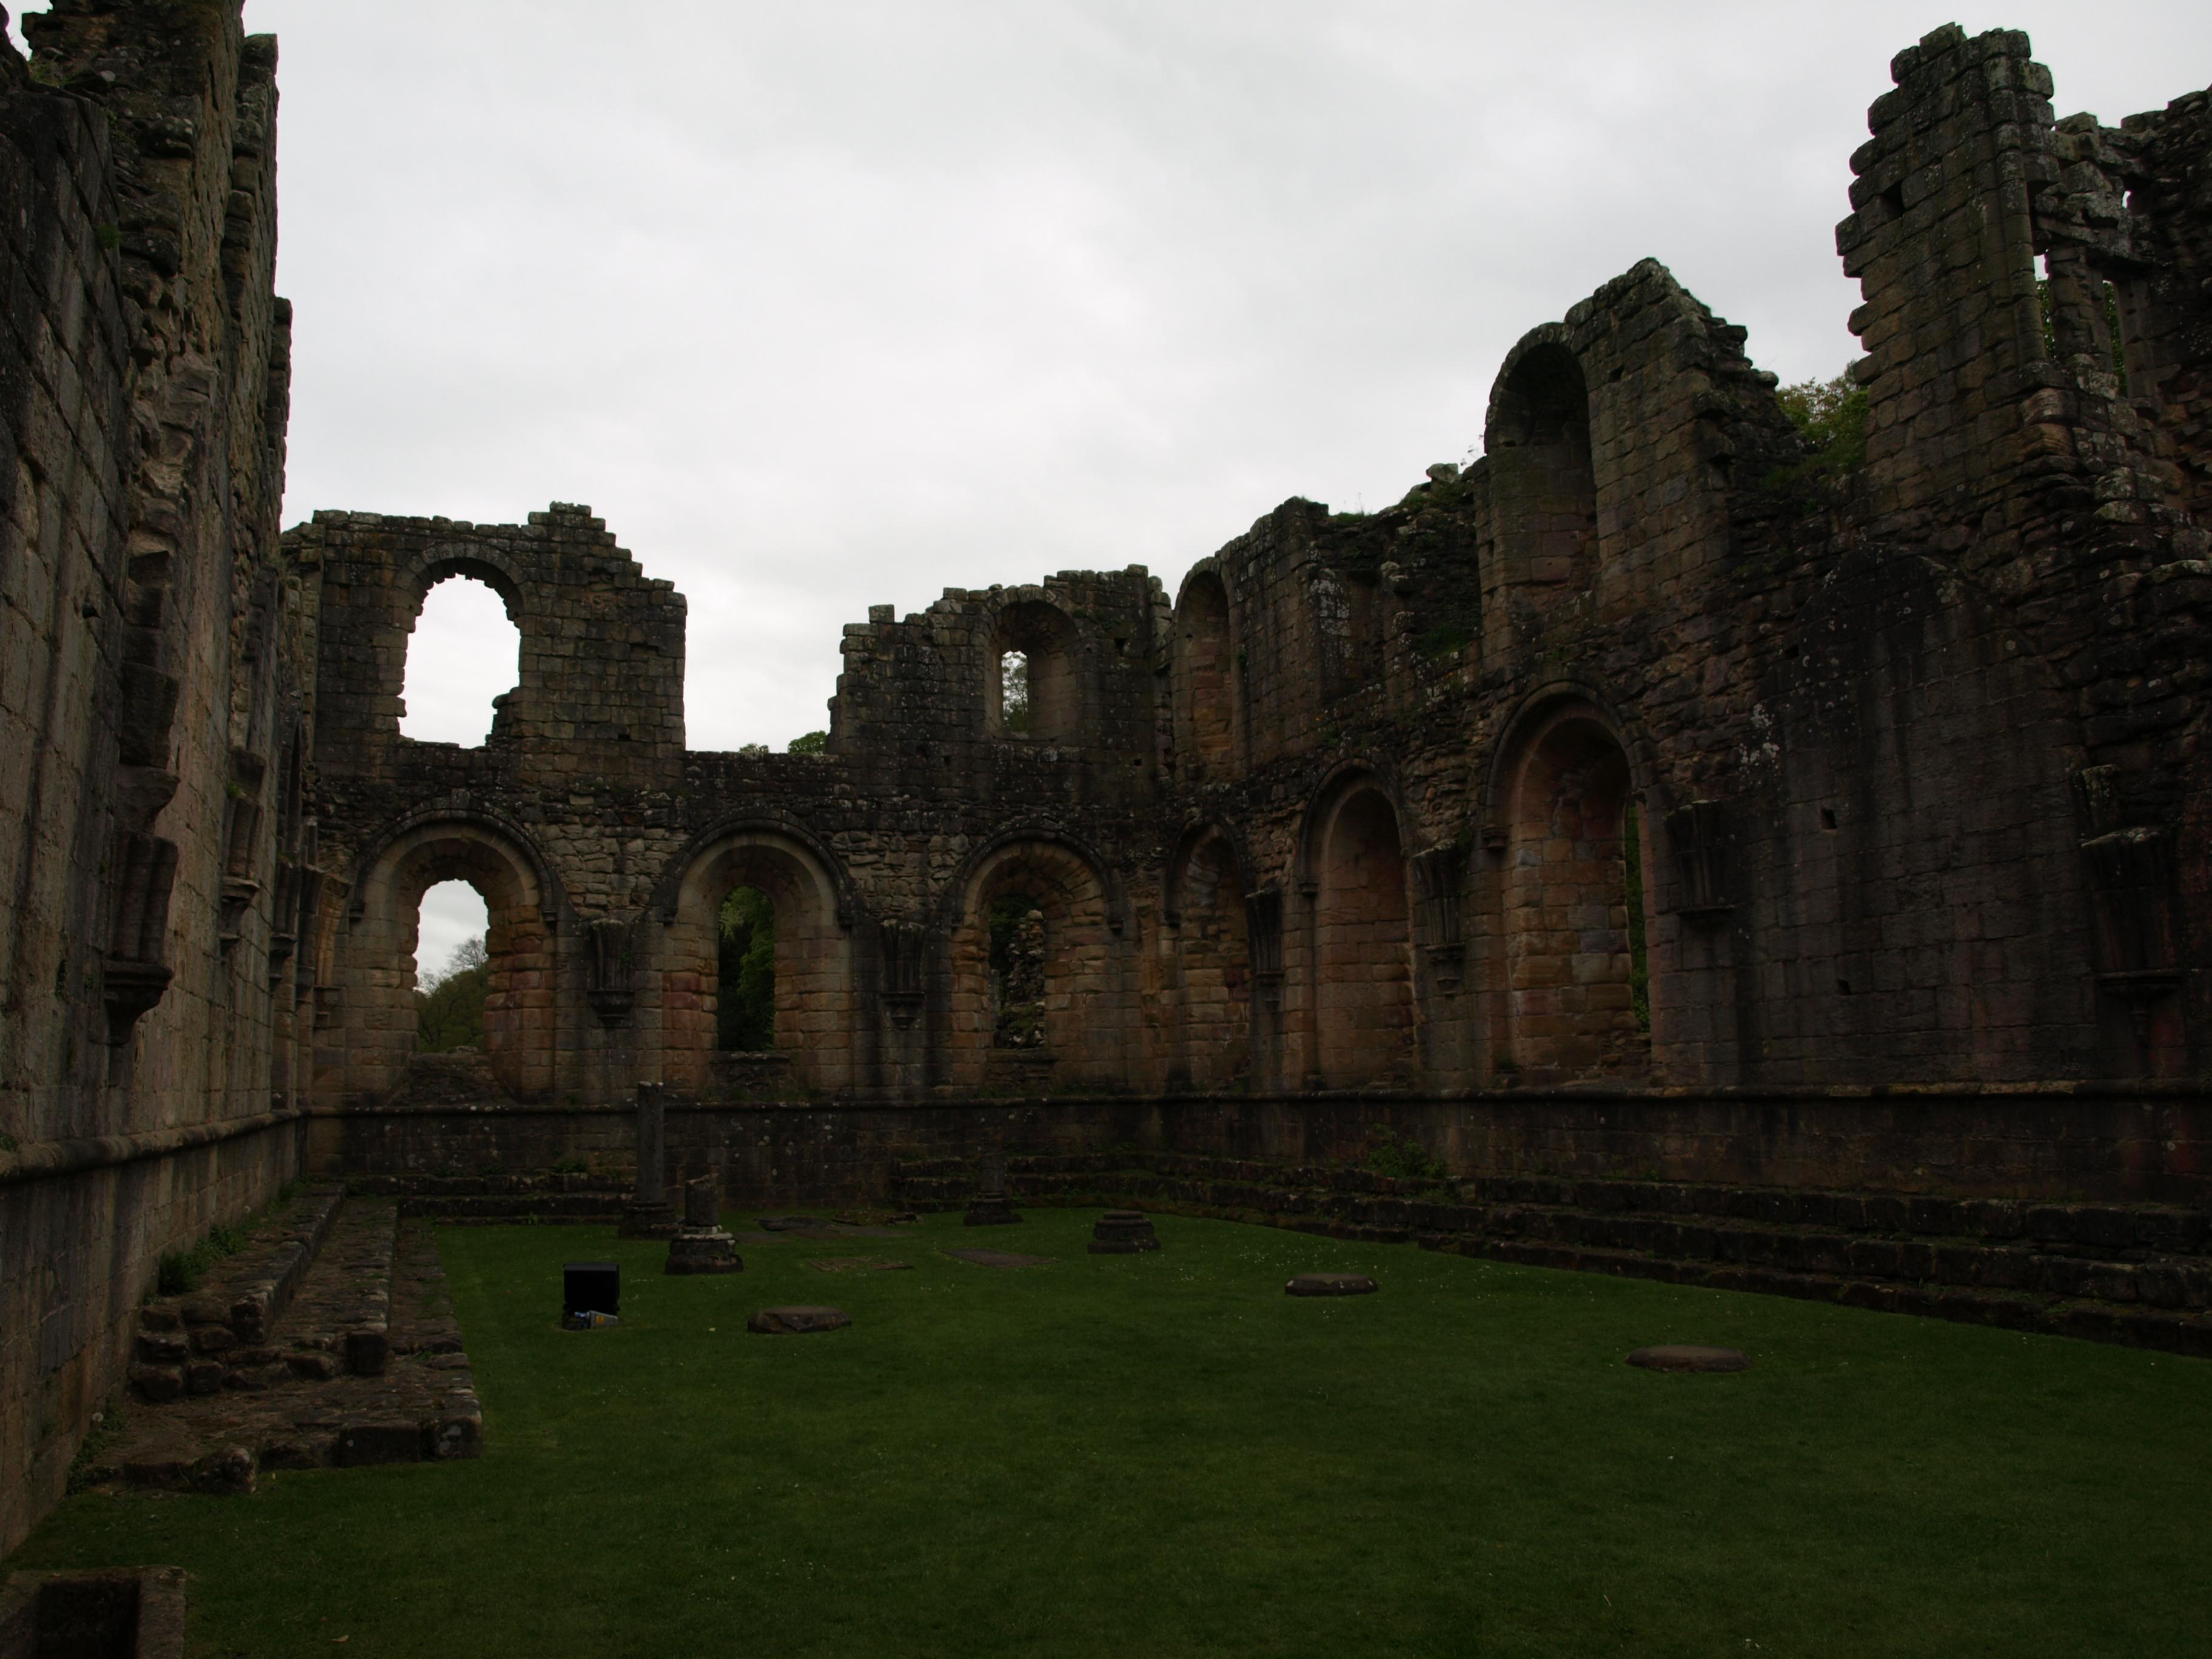 Within the Ruins of the Chapter House